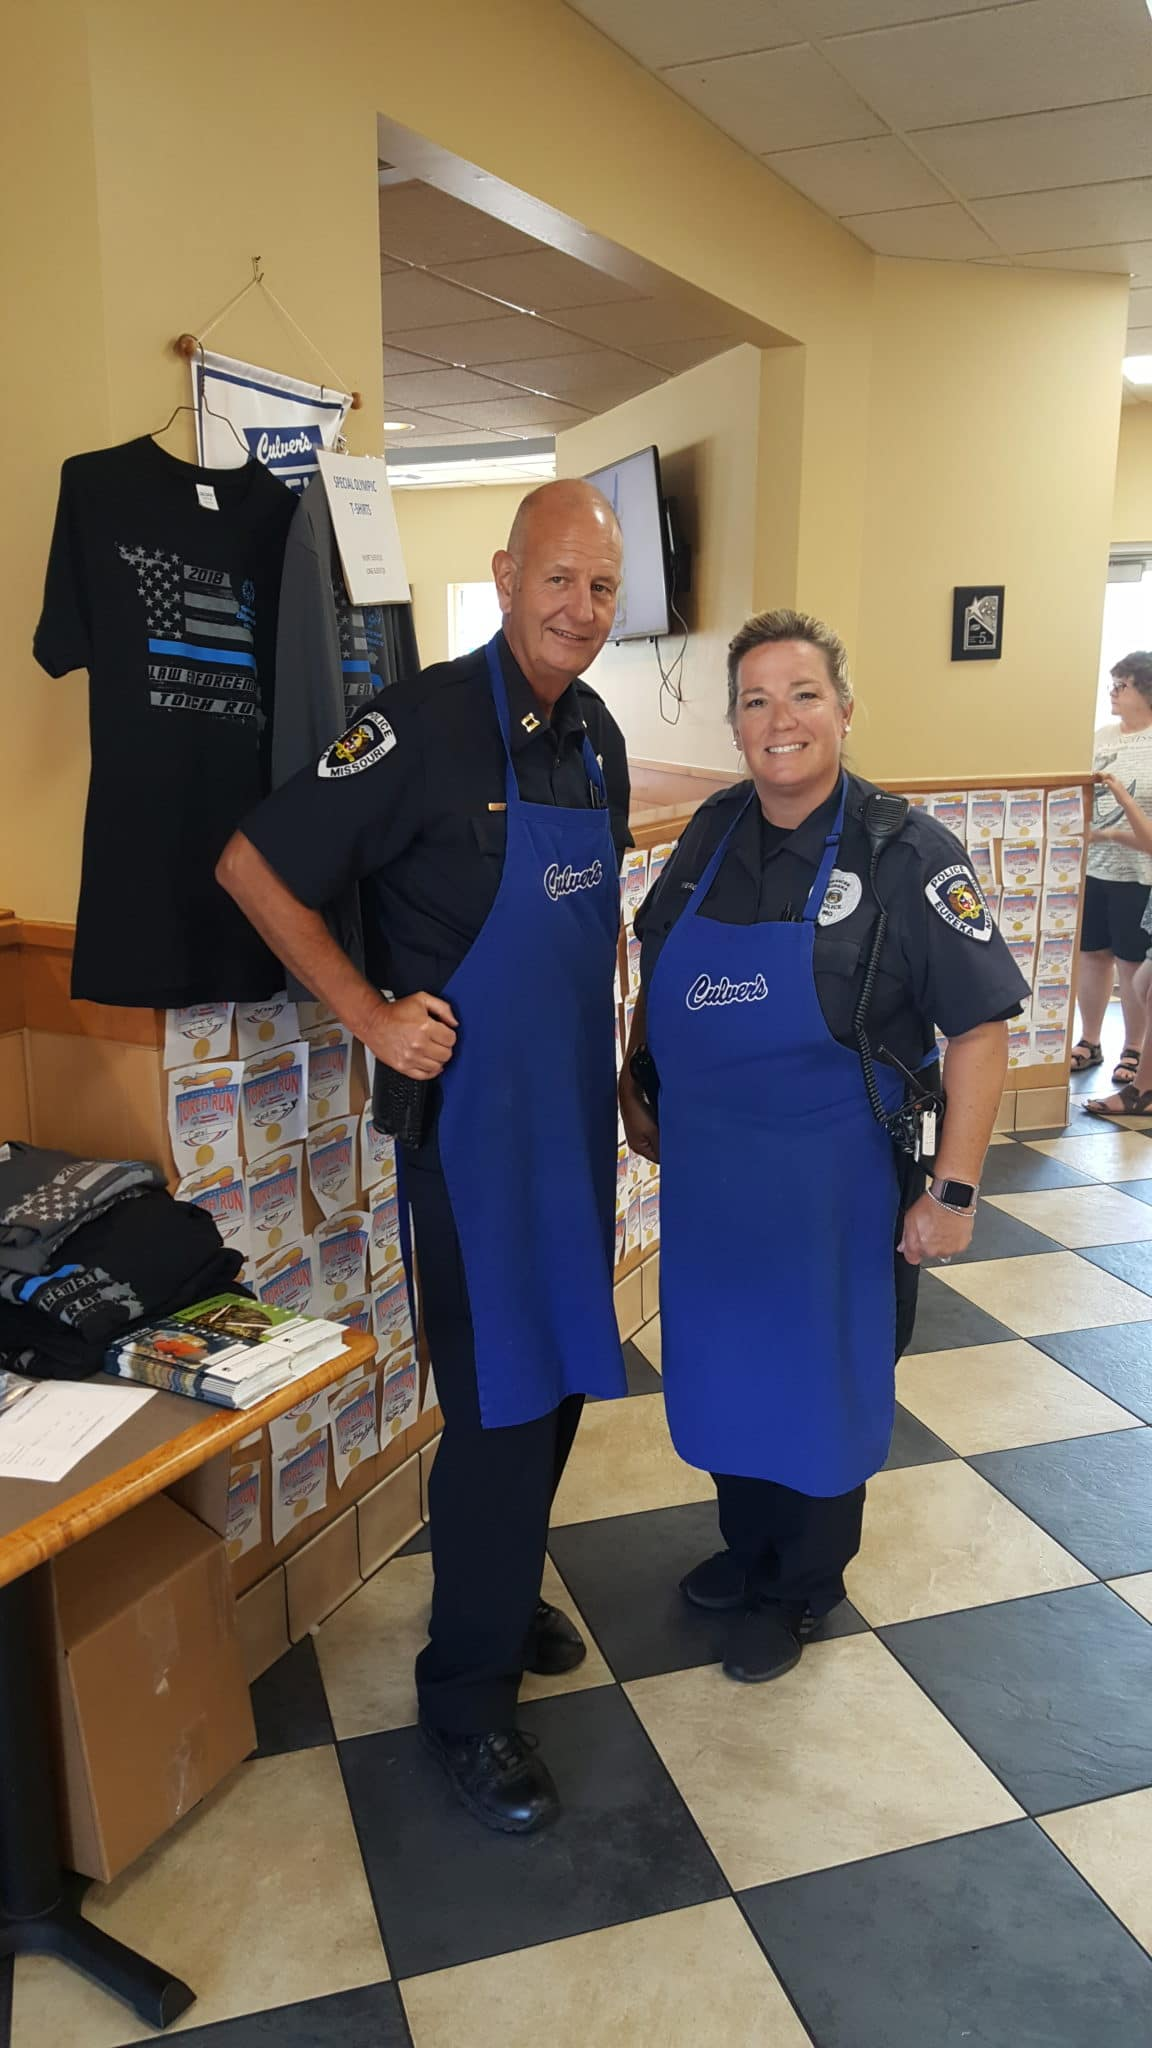 Two law enforcement officers pose for a photo while wearing Culver's aprons